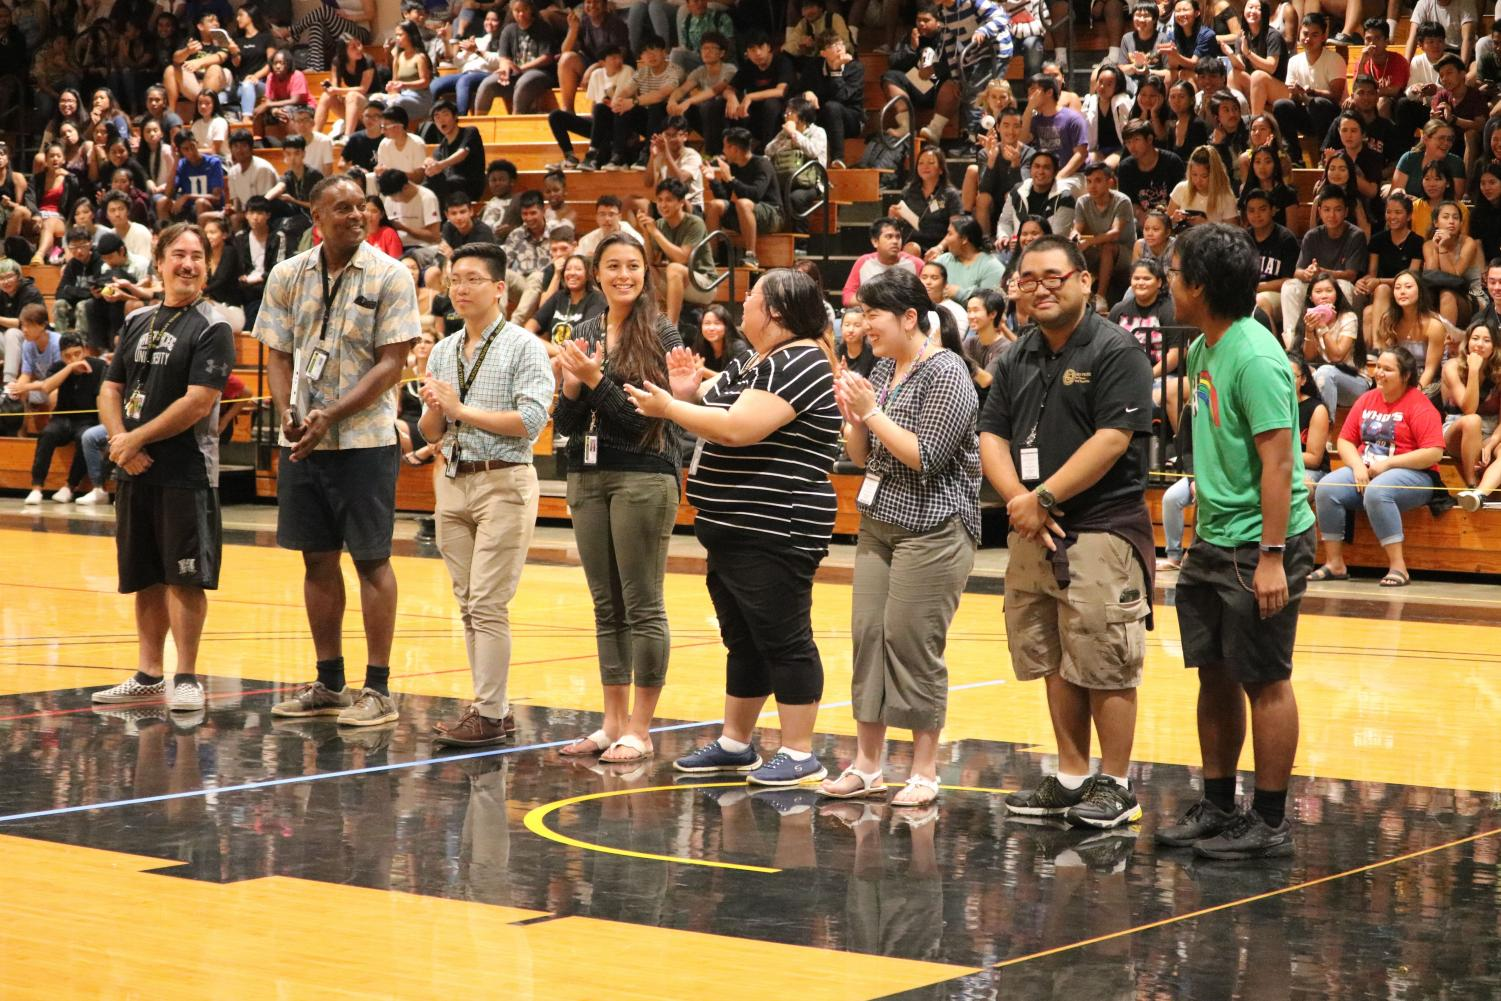 This+year%2C+McKinley+is+welcoming+multiple+teachers+to+the+Tiger+Ohana.+%0Aphoto+by+Sabrina+Williams